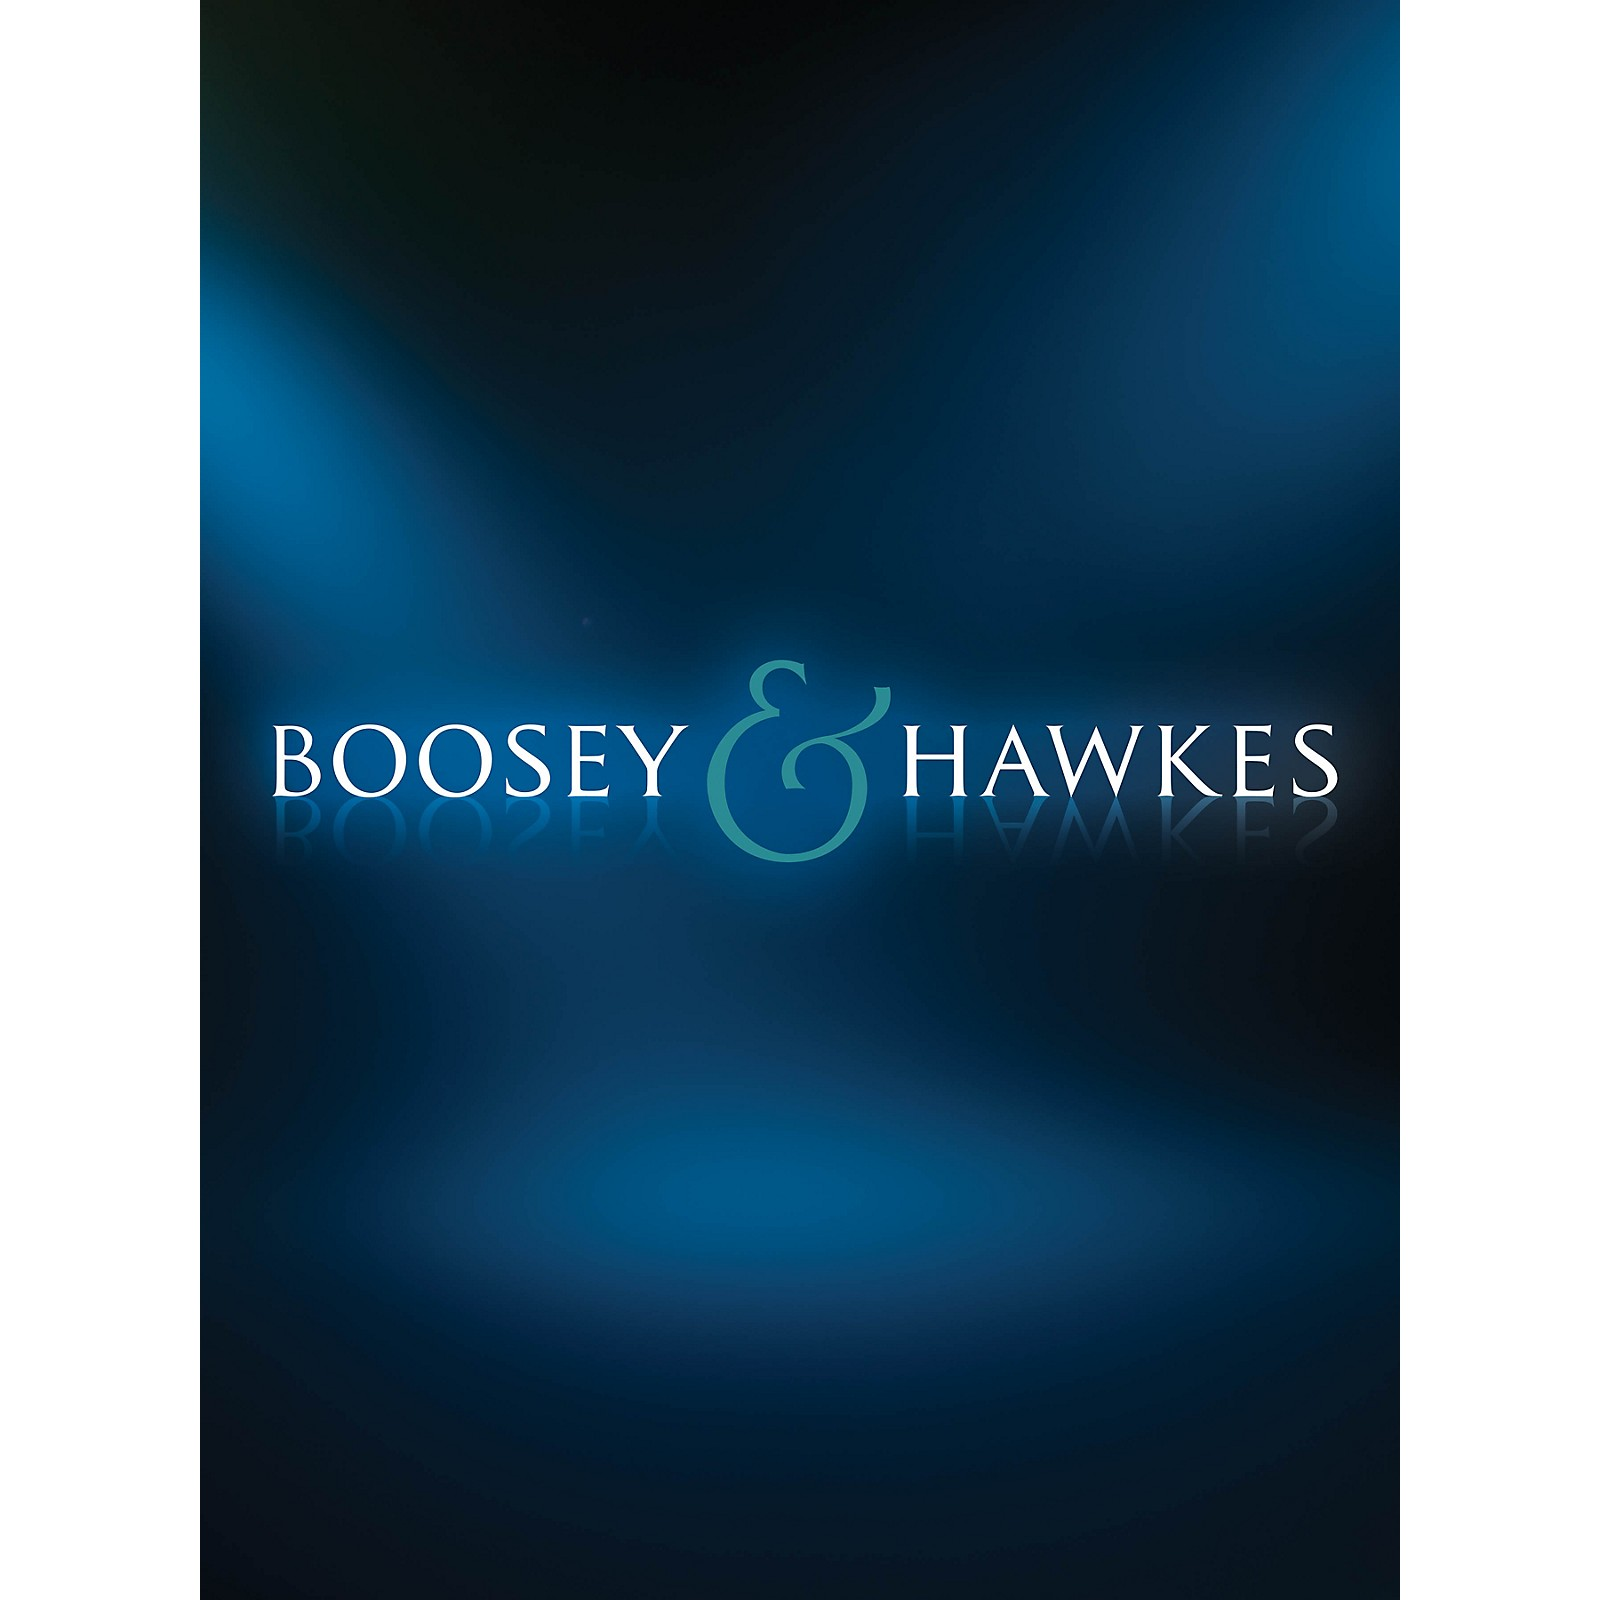 Boosey and Hawkes Muéveme (CME Latin Accents) 3 Part Treble Composed by Andrea Ramsey